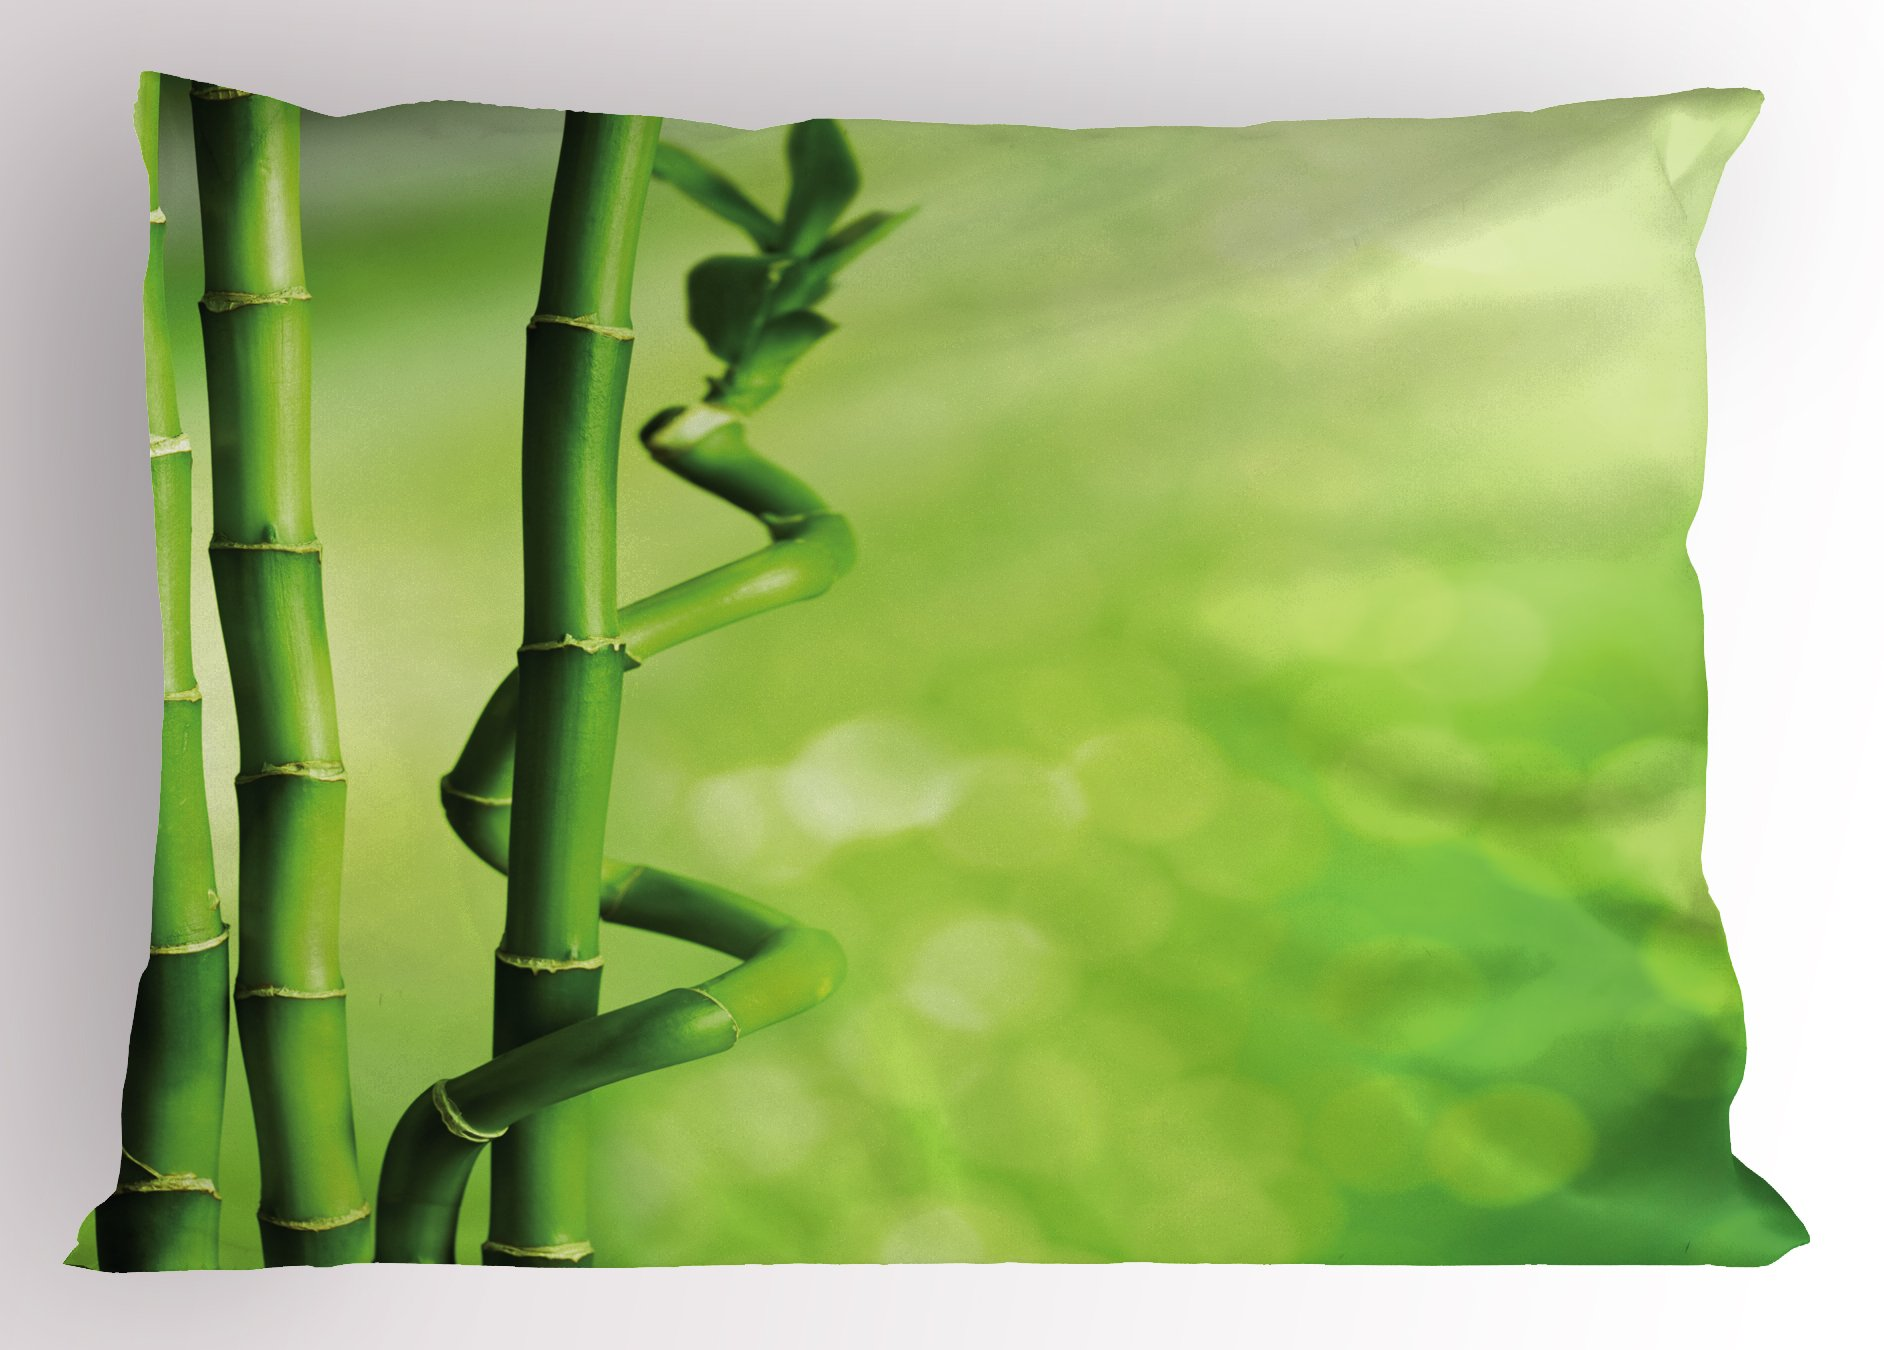 Ambesonne Green Pillow Sham, Bamboo Stems Nature Ecology Sunbeams Soft Spring Scenic Spa Health Relaxation, Decorative Standard Queen Size Printed Pillowcase, 30 X 20 inches, Green Light Green